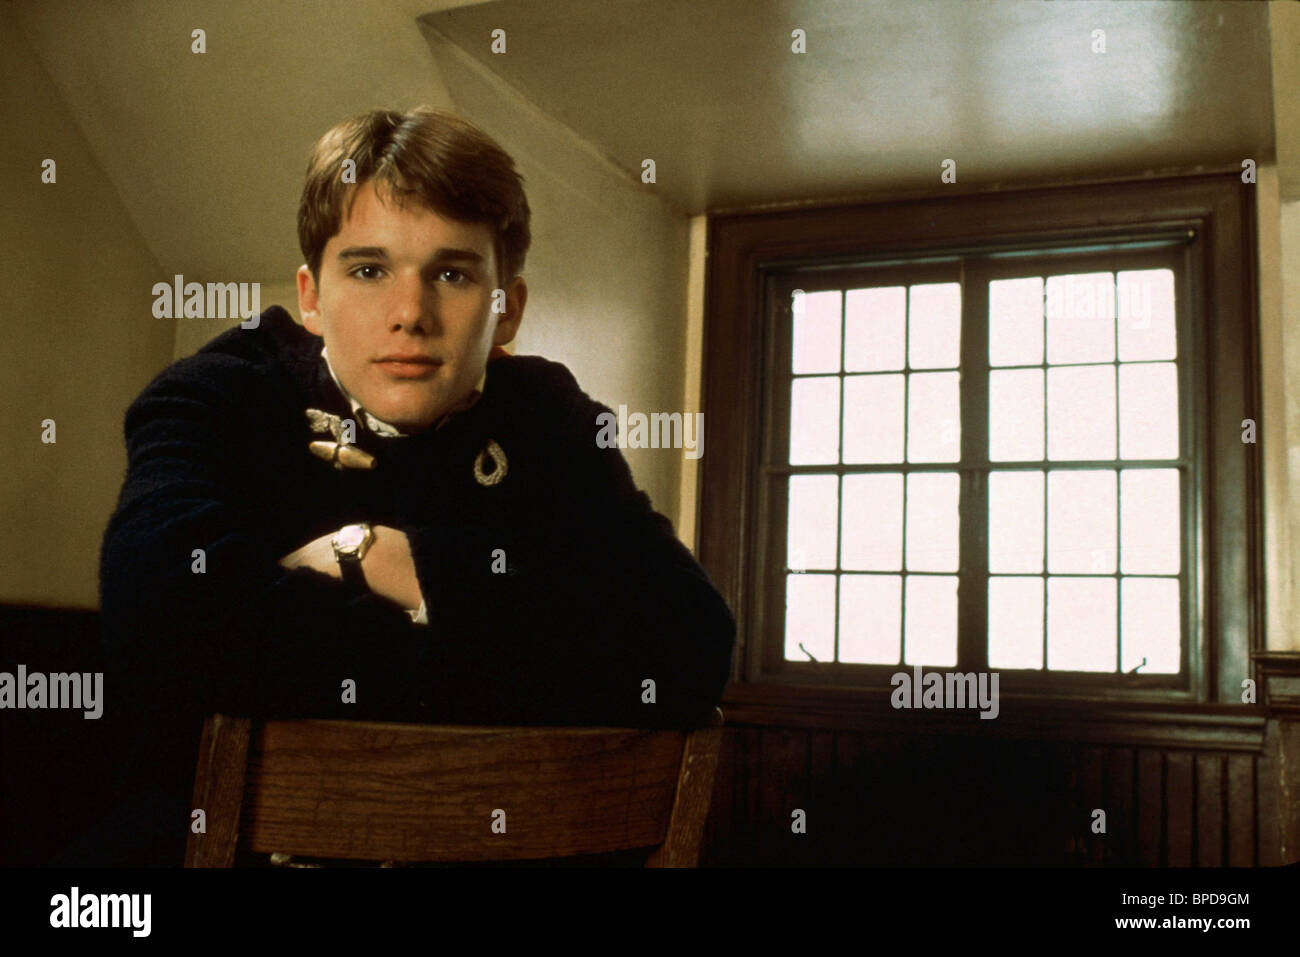 dead poets society 1989 English teacher keating told their students to look at poetry with a different perspective of really authentic knowledge and feelings.